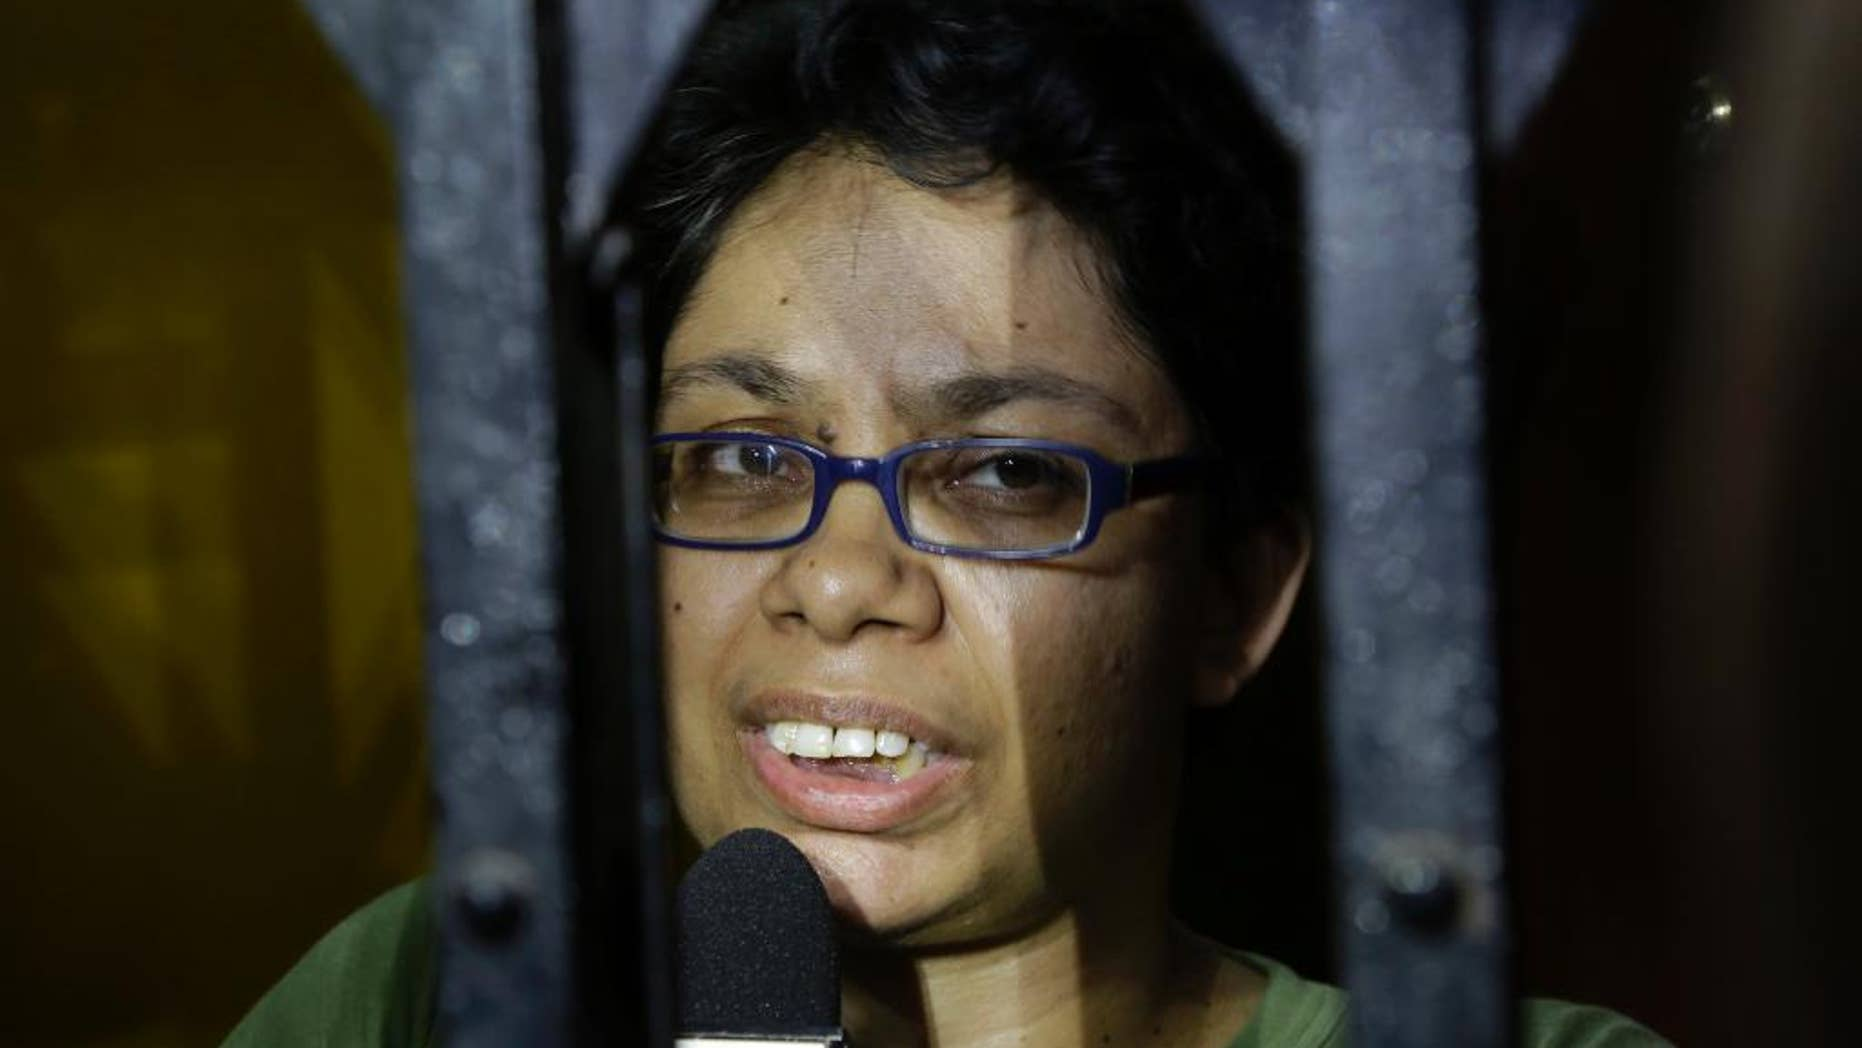 Agnes D'Souza, sister of Judith D'Souza who has allegedly been kidnapped in Afghanistan, talks to journalists from behind the front gate of their apartment in Kolkata, India, Friday, June 10, 2016. The 40-year-old worker was hired by the Aga Khan Foundation, which provides education and health assistance in about 30 countries. (AP Photo/ Bikas Das)